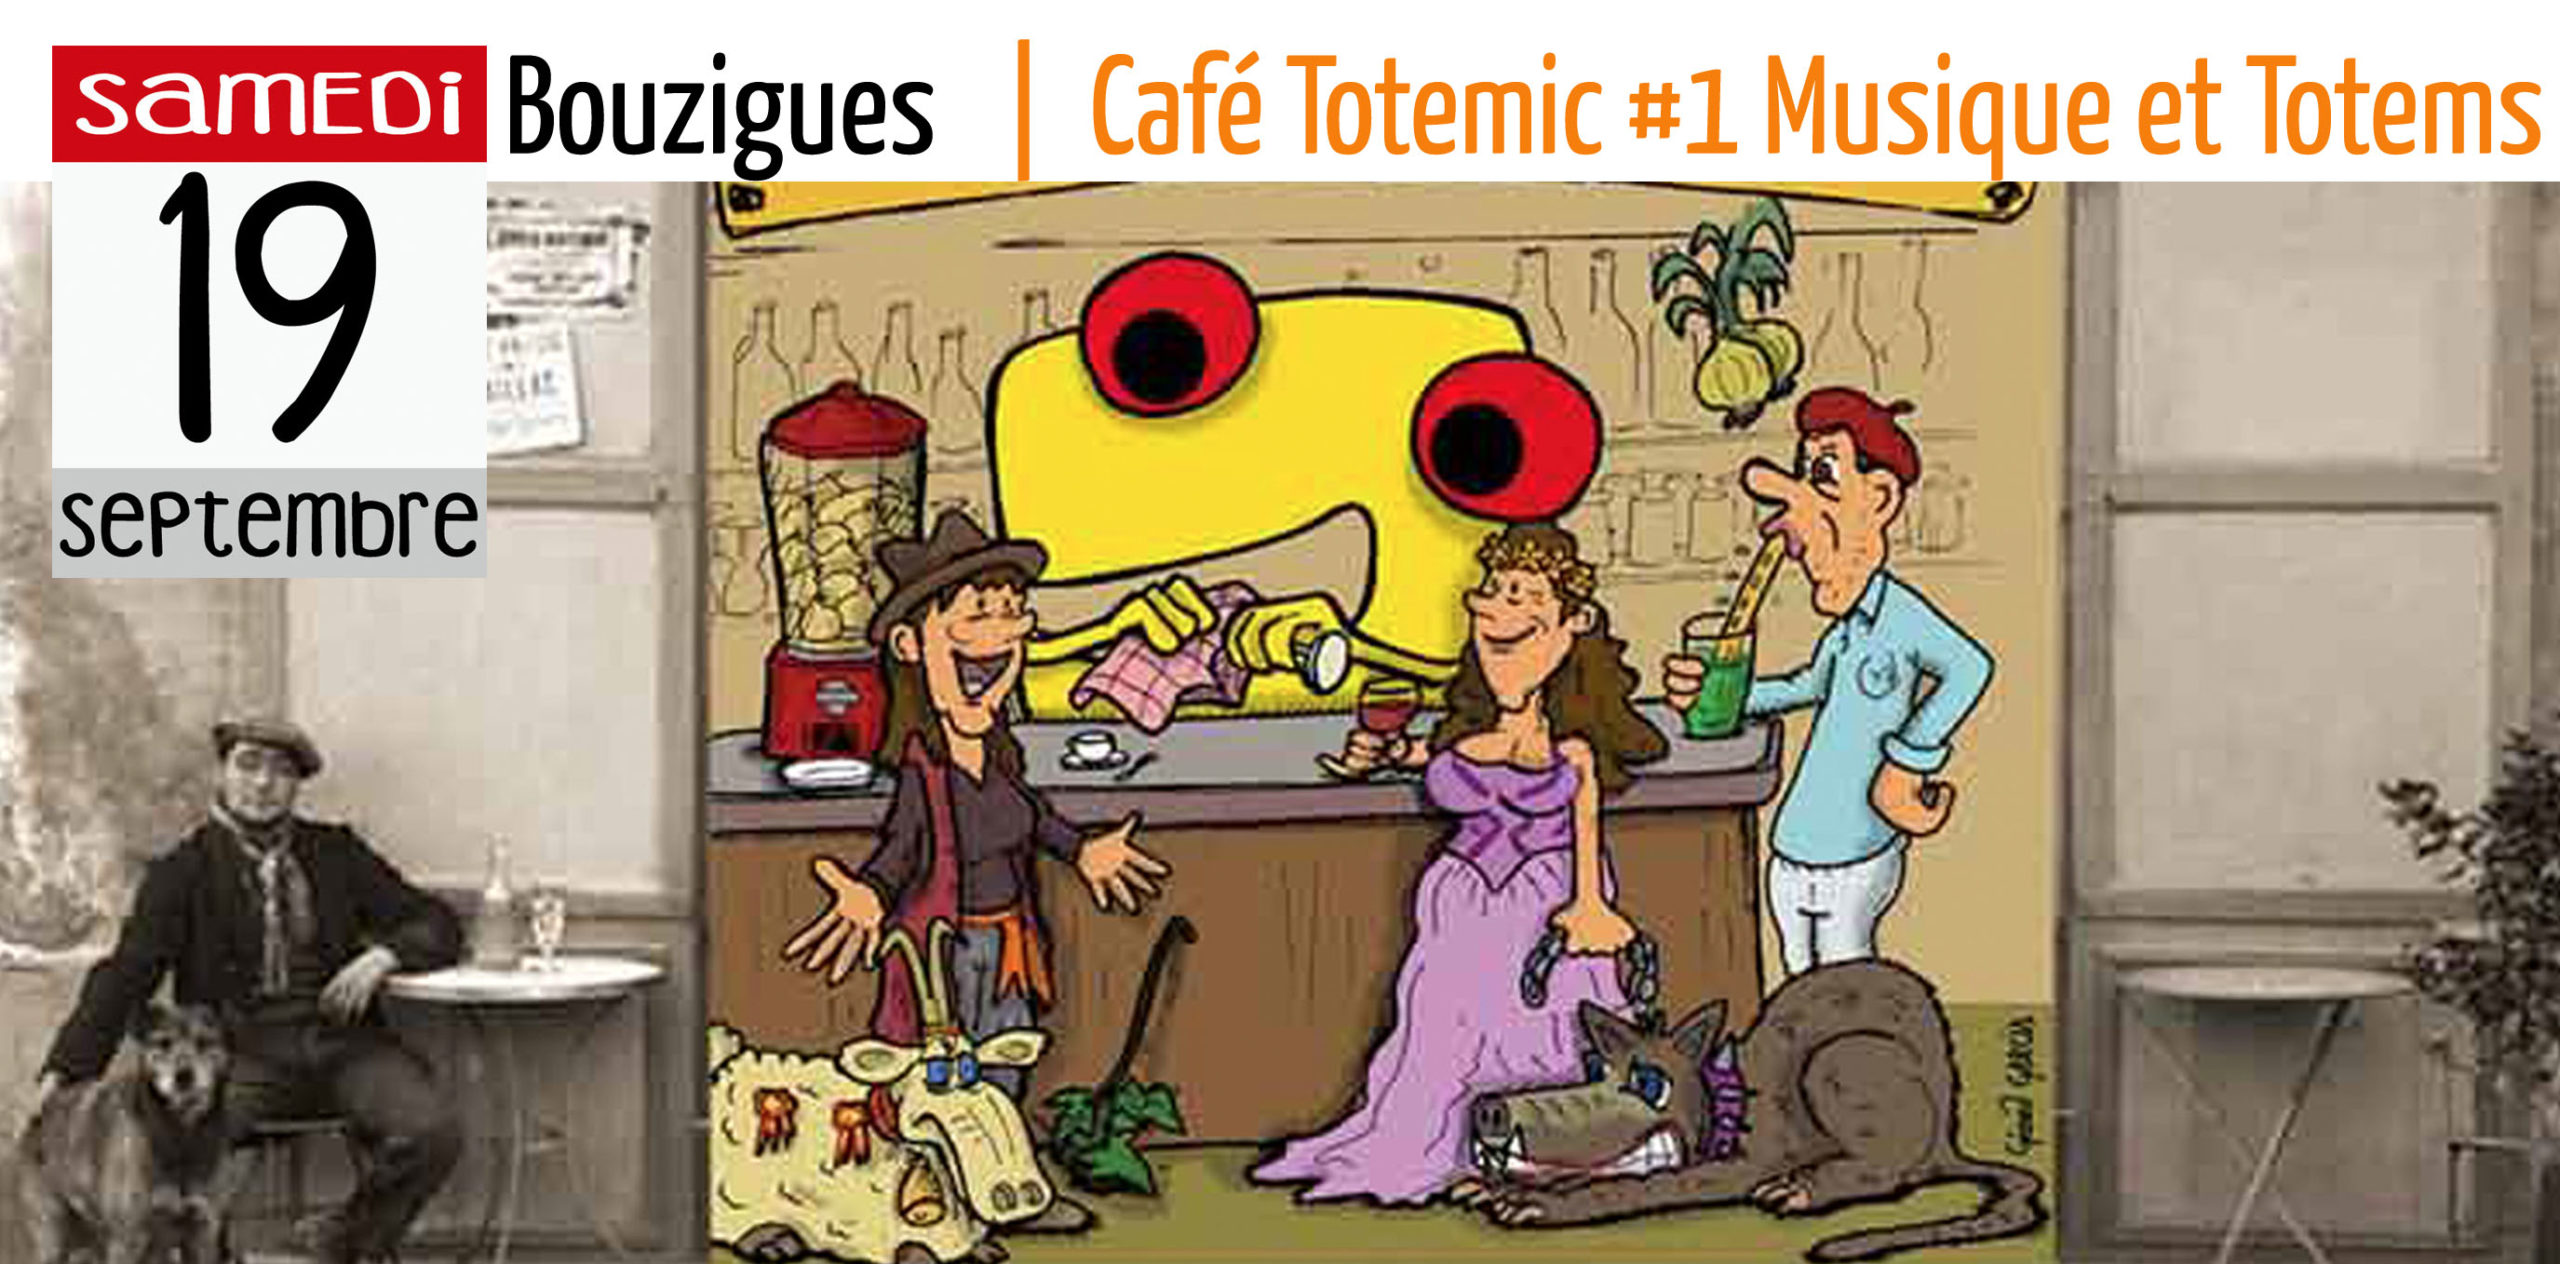 CafeTotemic1